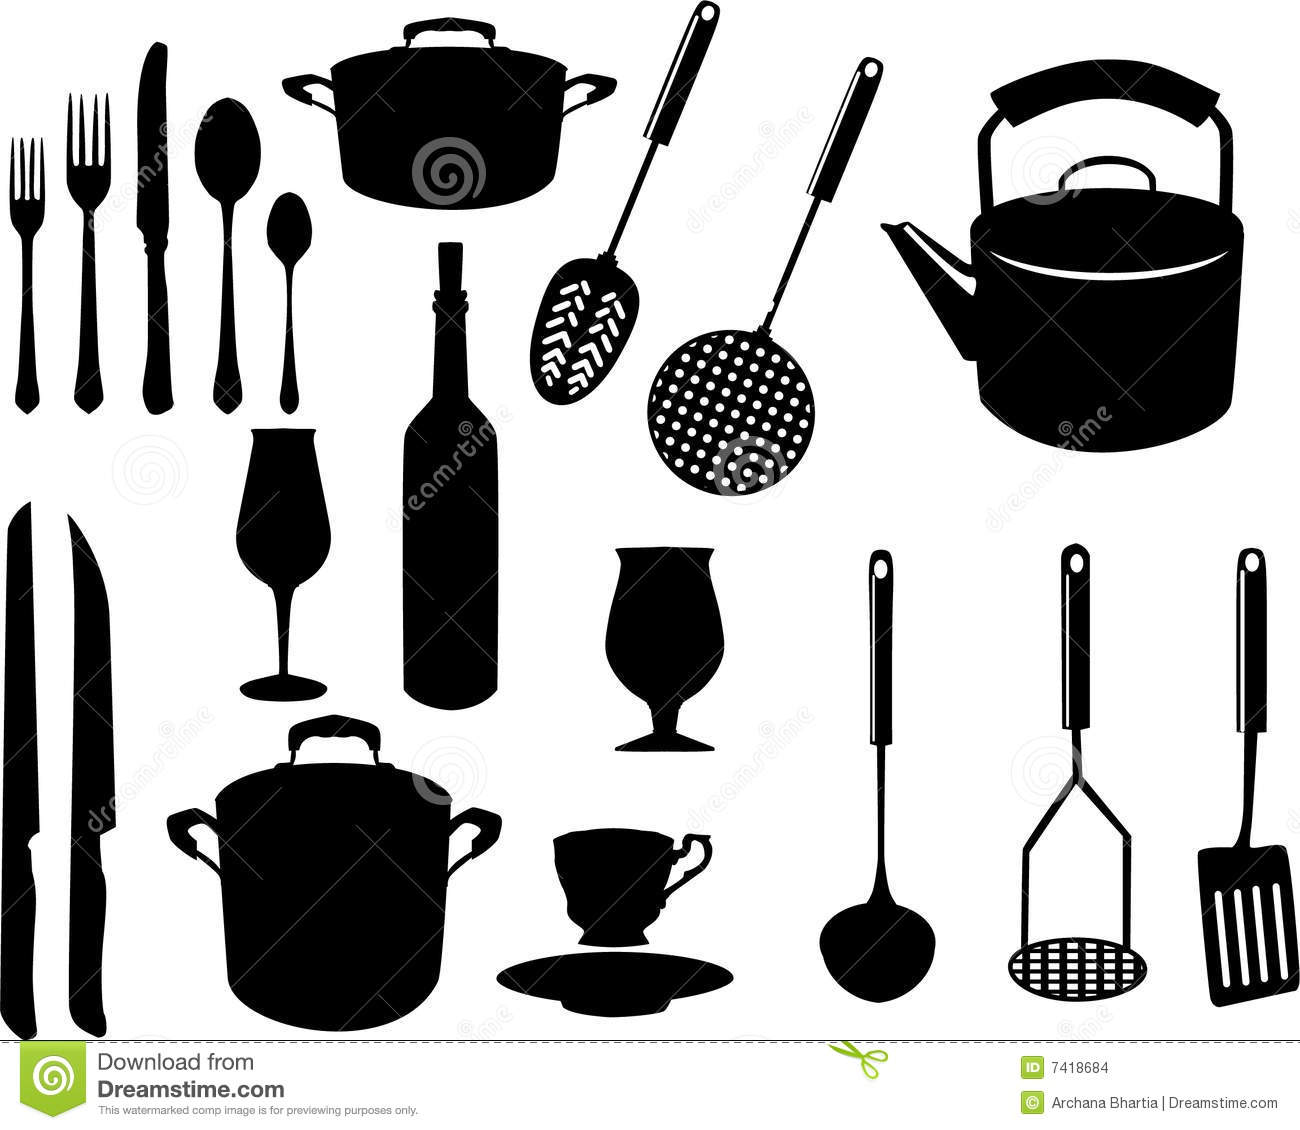 Ustensiles divers de cuisine illustration de vecteur for Nom ustensile de cuisine